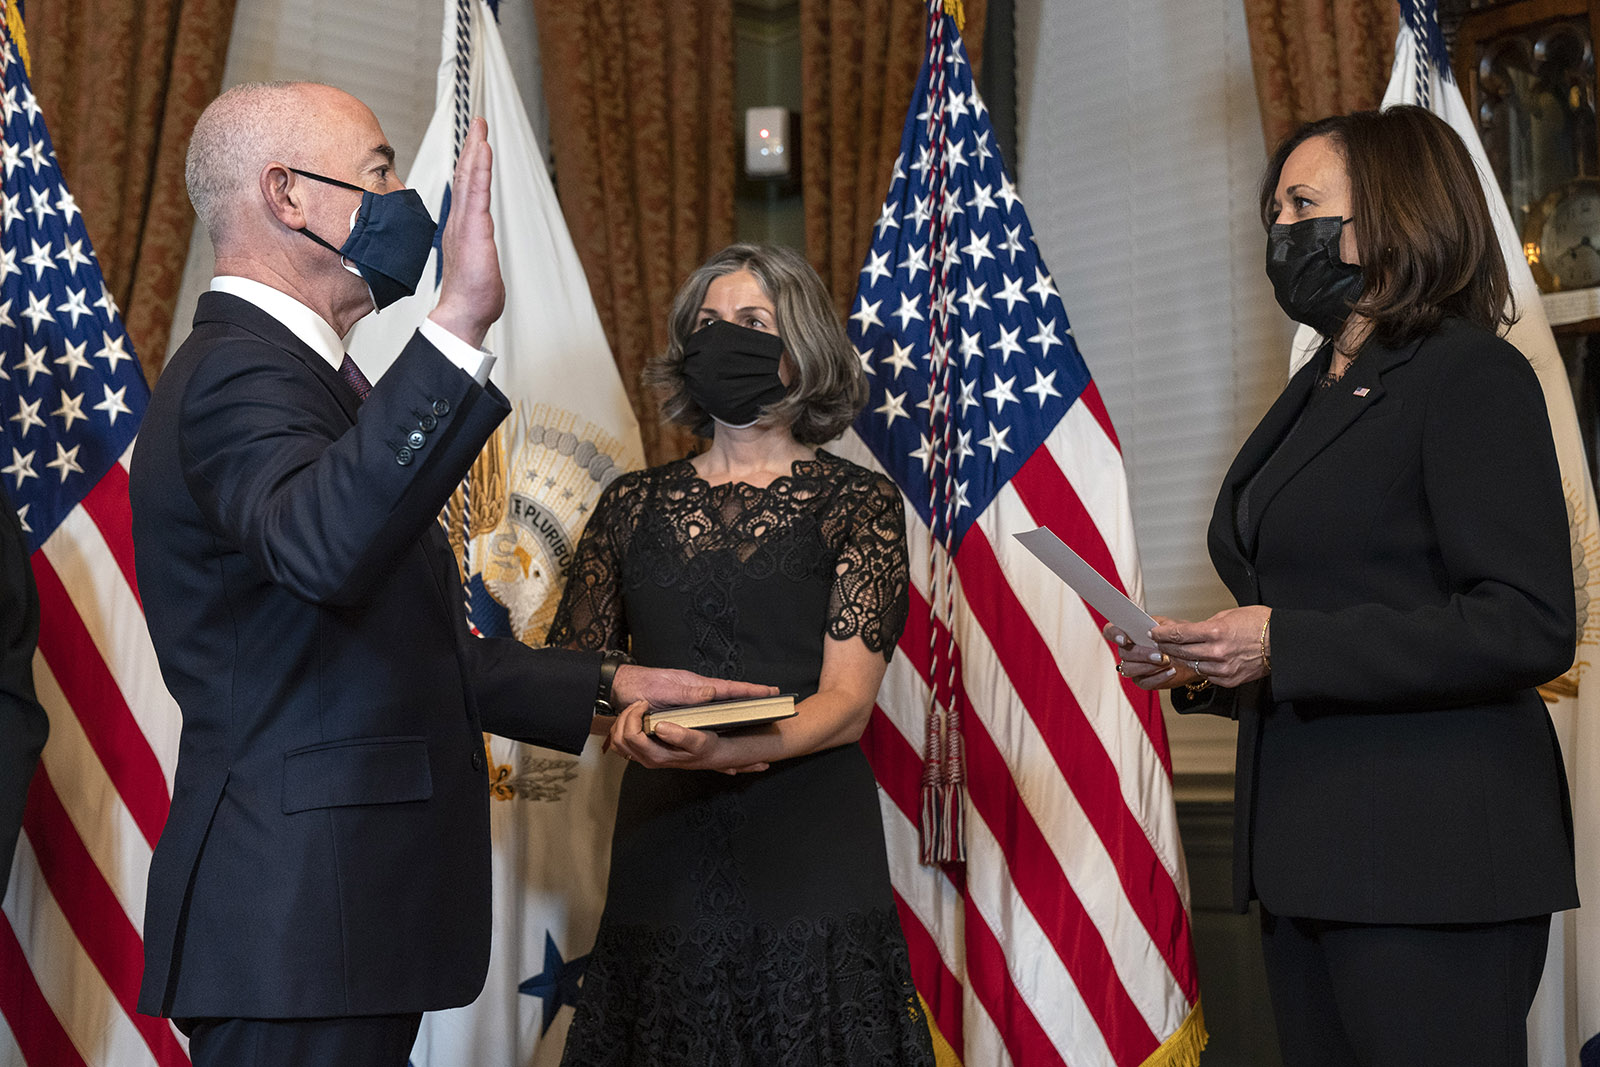 Vice President Kamala Harris swears in Alejandro Mayorkas as Secretary of the Department of Homeland Security, accompanied by his wife Tanya Mayorkas, on Tuesday, February 2, at the Eisenhower Executive Office Building on the White House Complex in Washington.